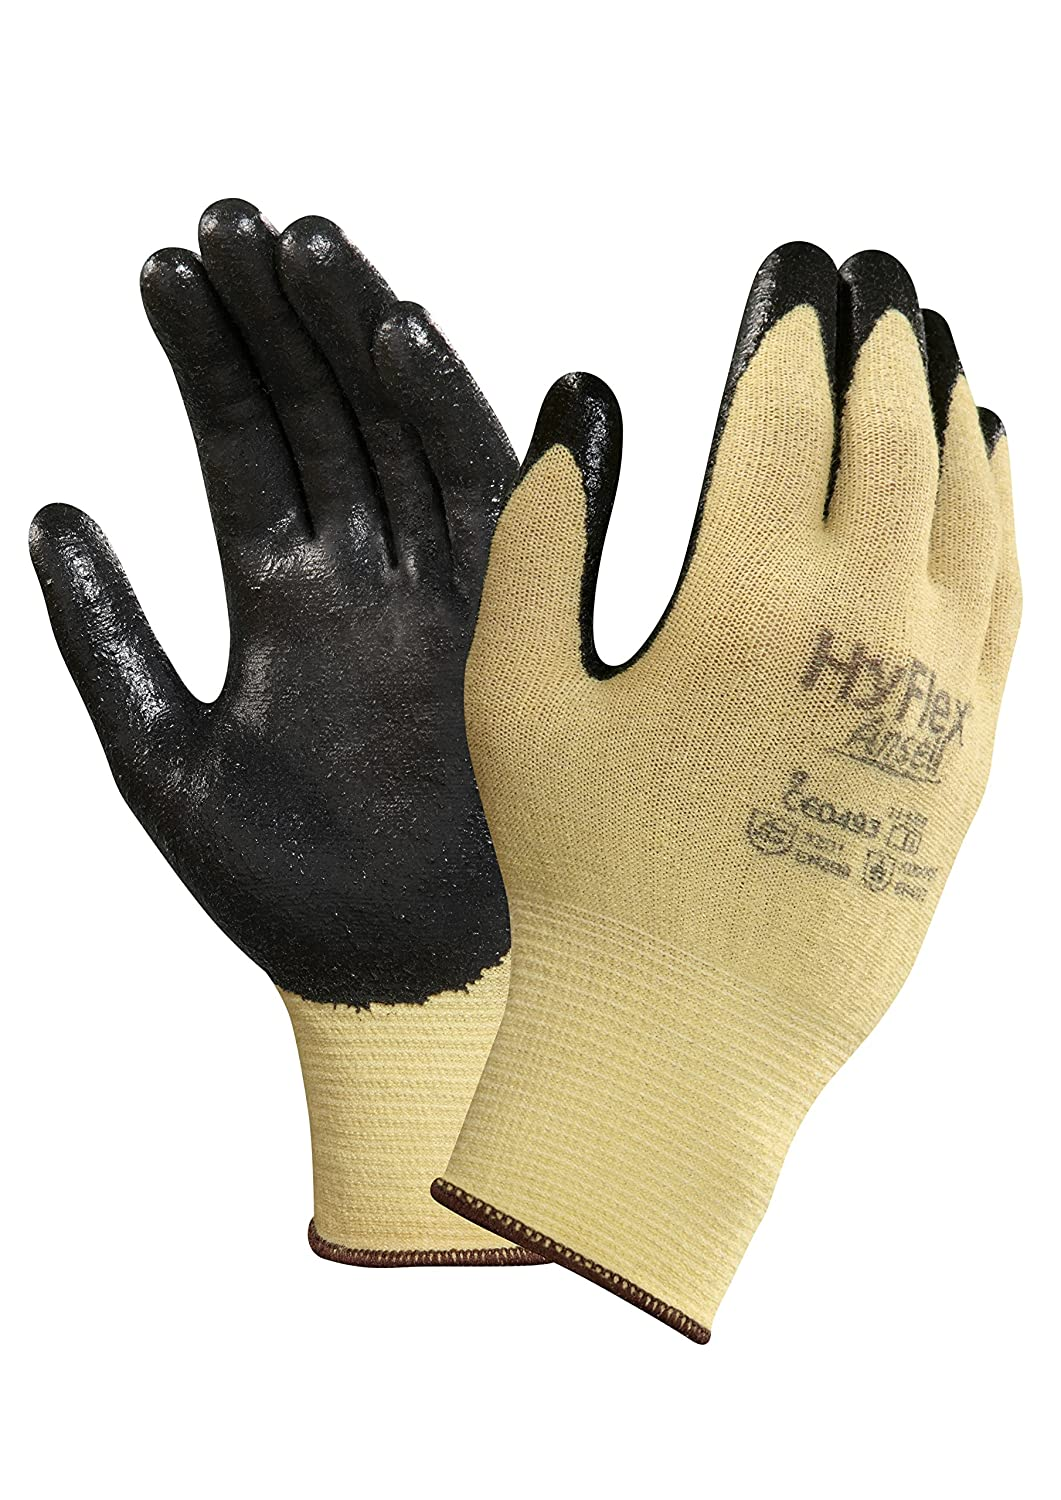 Ansell 103325 HyFlex 11-500 Black Foam Nitrile Palm Coated Kevlar Gloves, 0.38